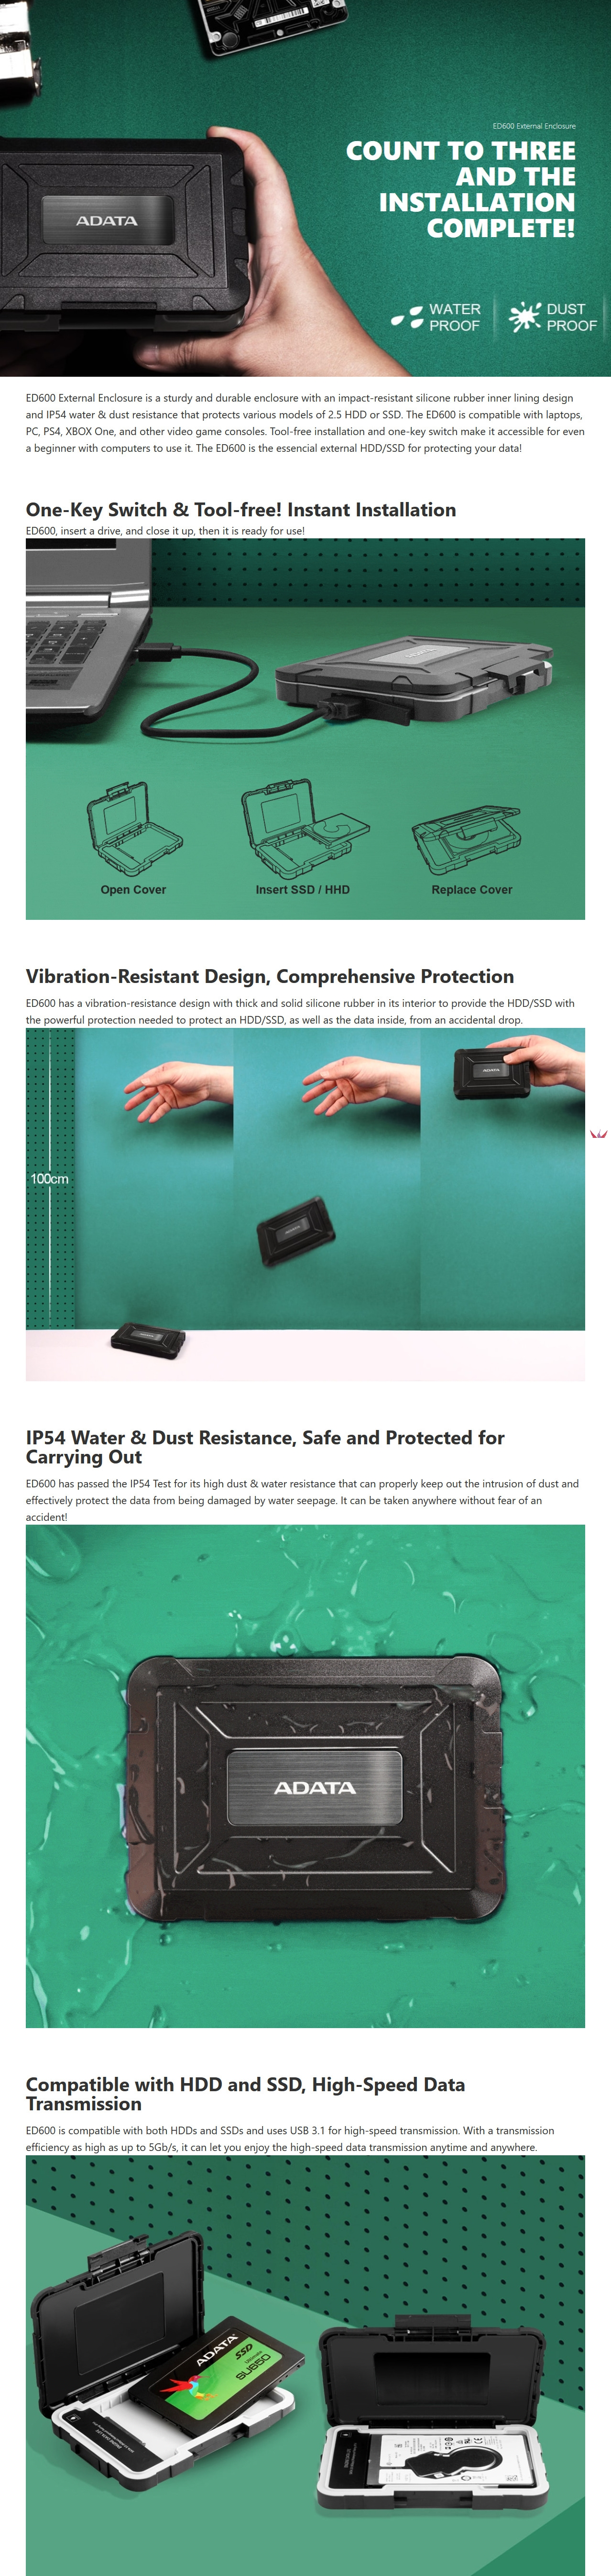 """A large marketing image providing additional information about the product ADATA Armoured ED600 2.5"""" External Hard Drive Enclosure - Additional alt info not provided"""